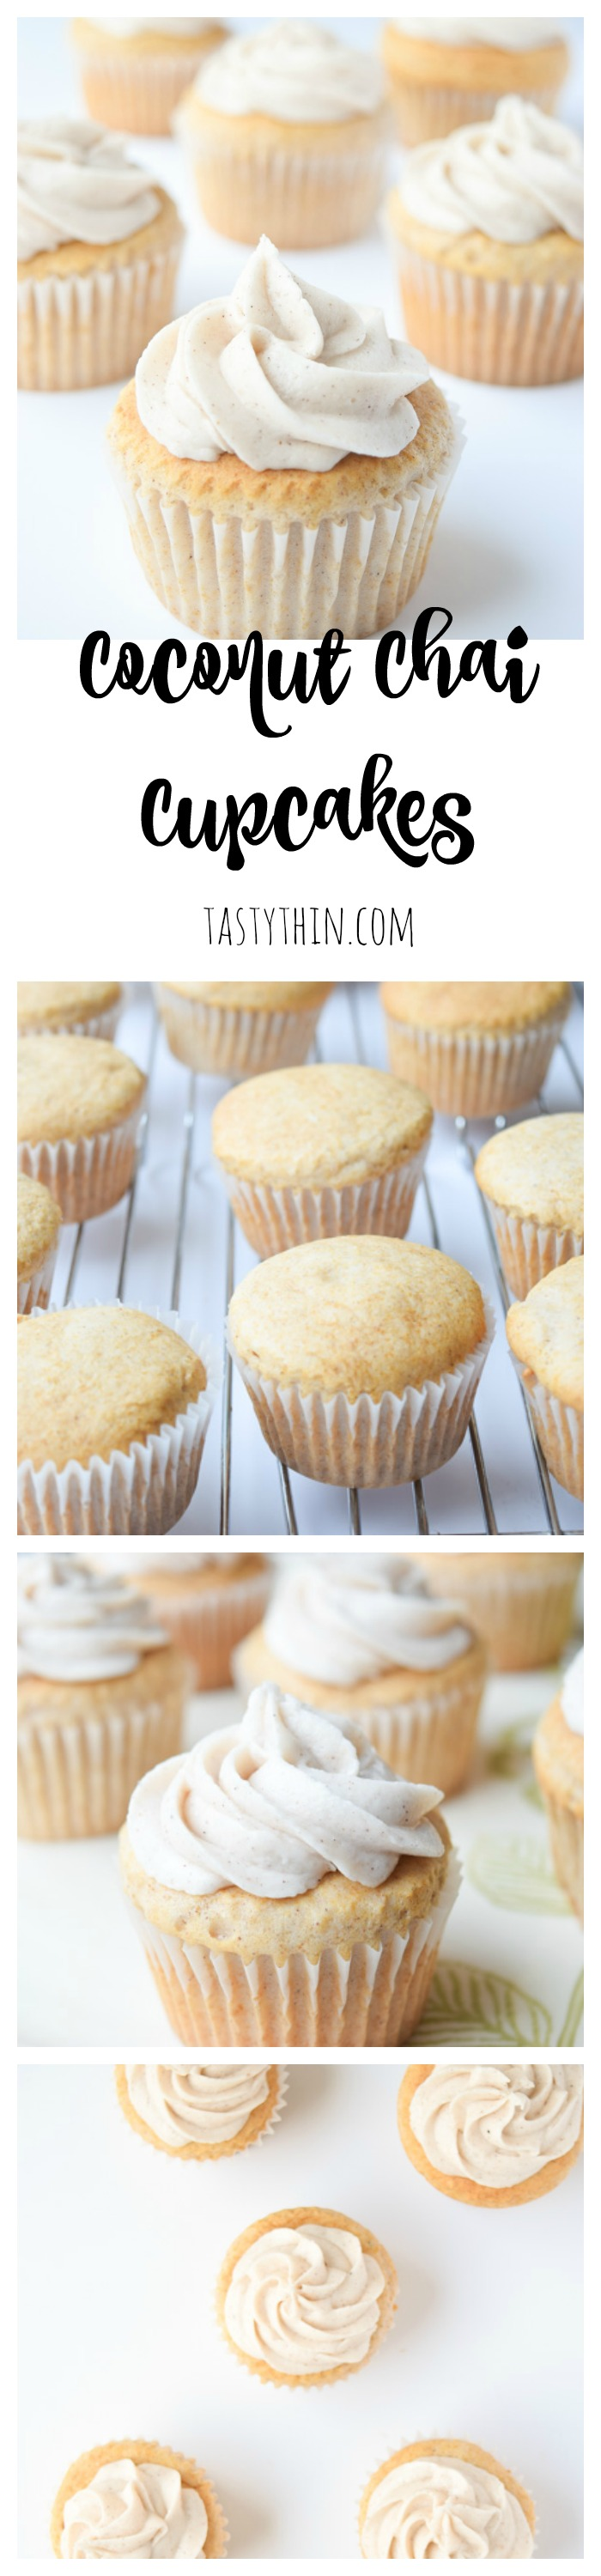 Coconut Chai Cupcakes With Vegan Buttercream Chai Spiked Cupcakes Made With Box Cake Mix And Coconu Yummy Food Dessert Delicious Cupcakes Recipes Eat Dessert